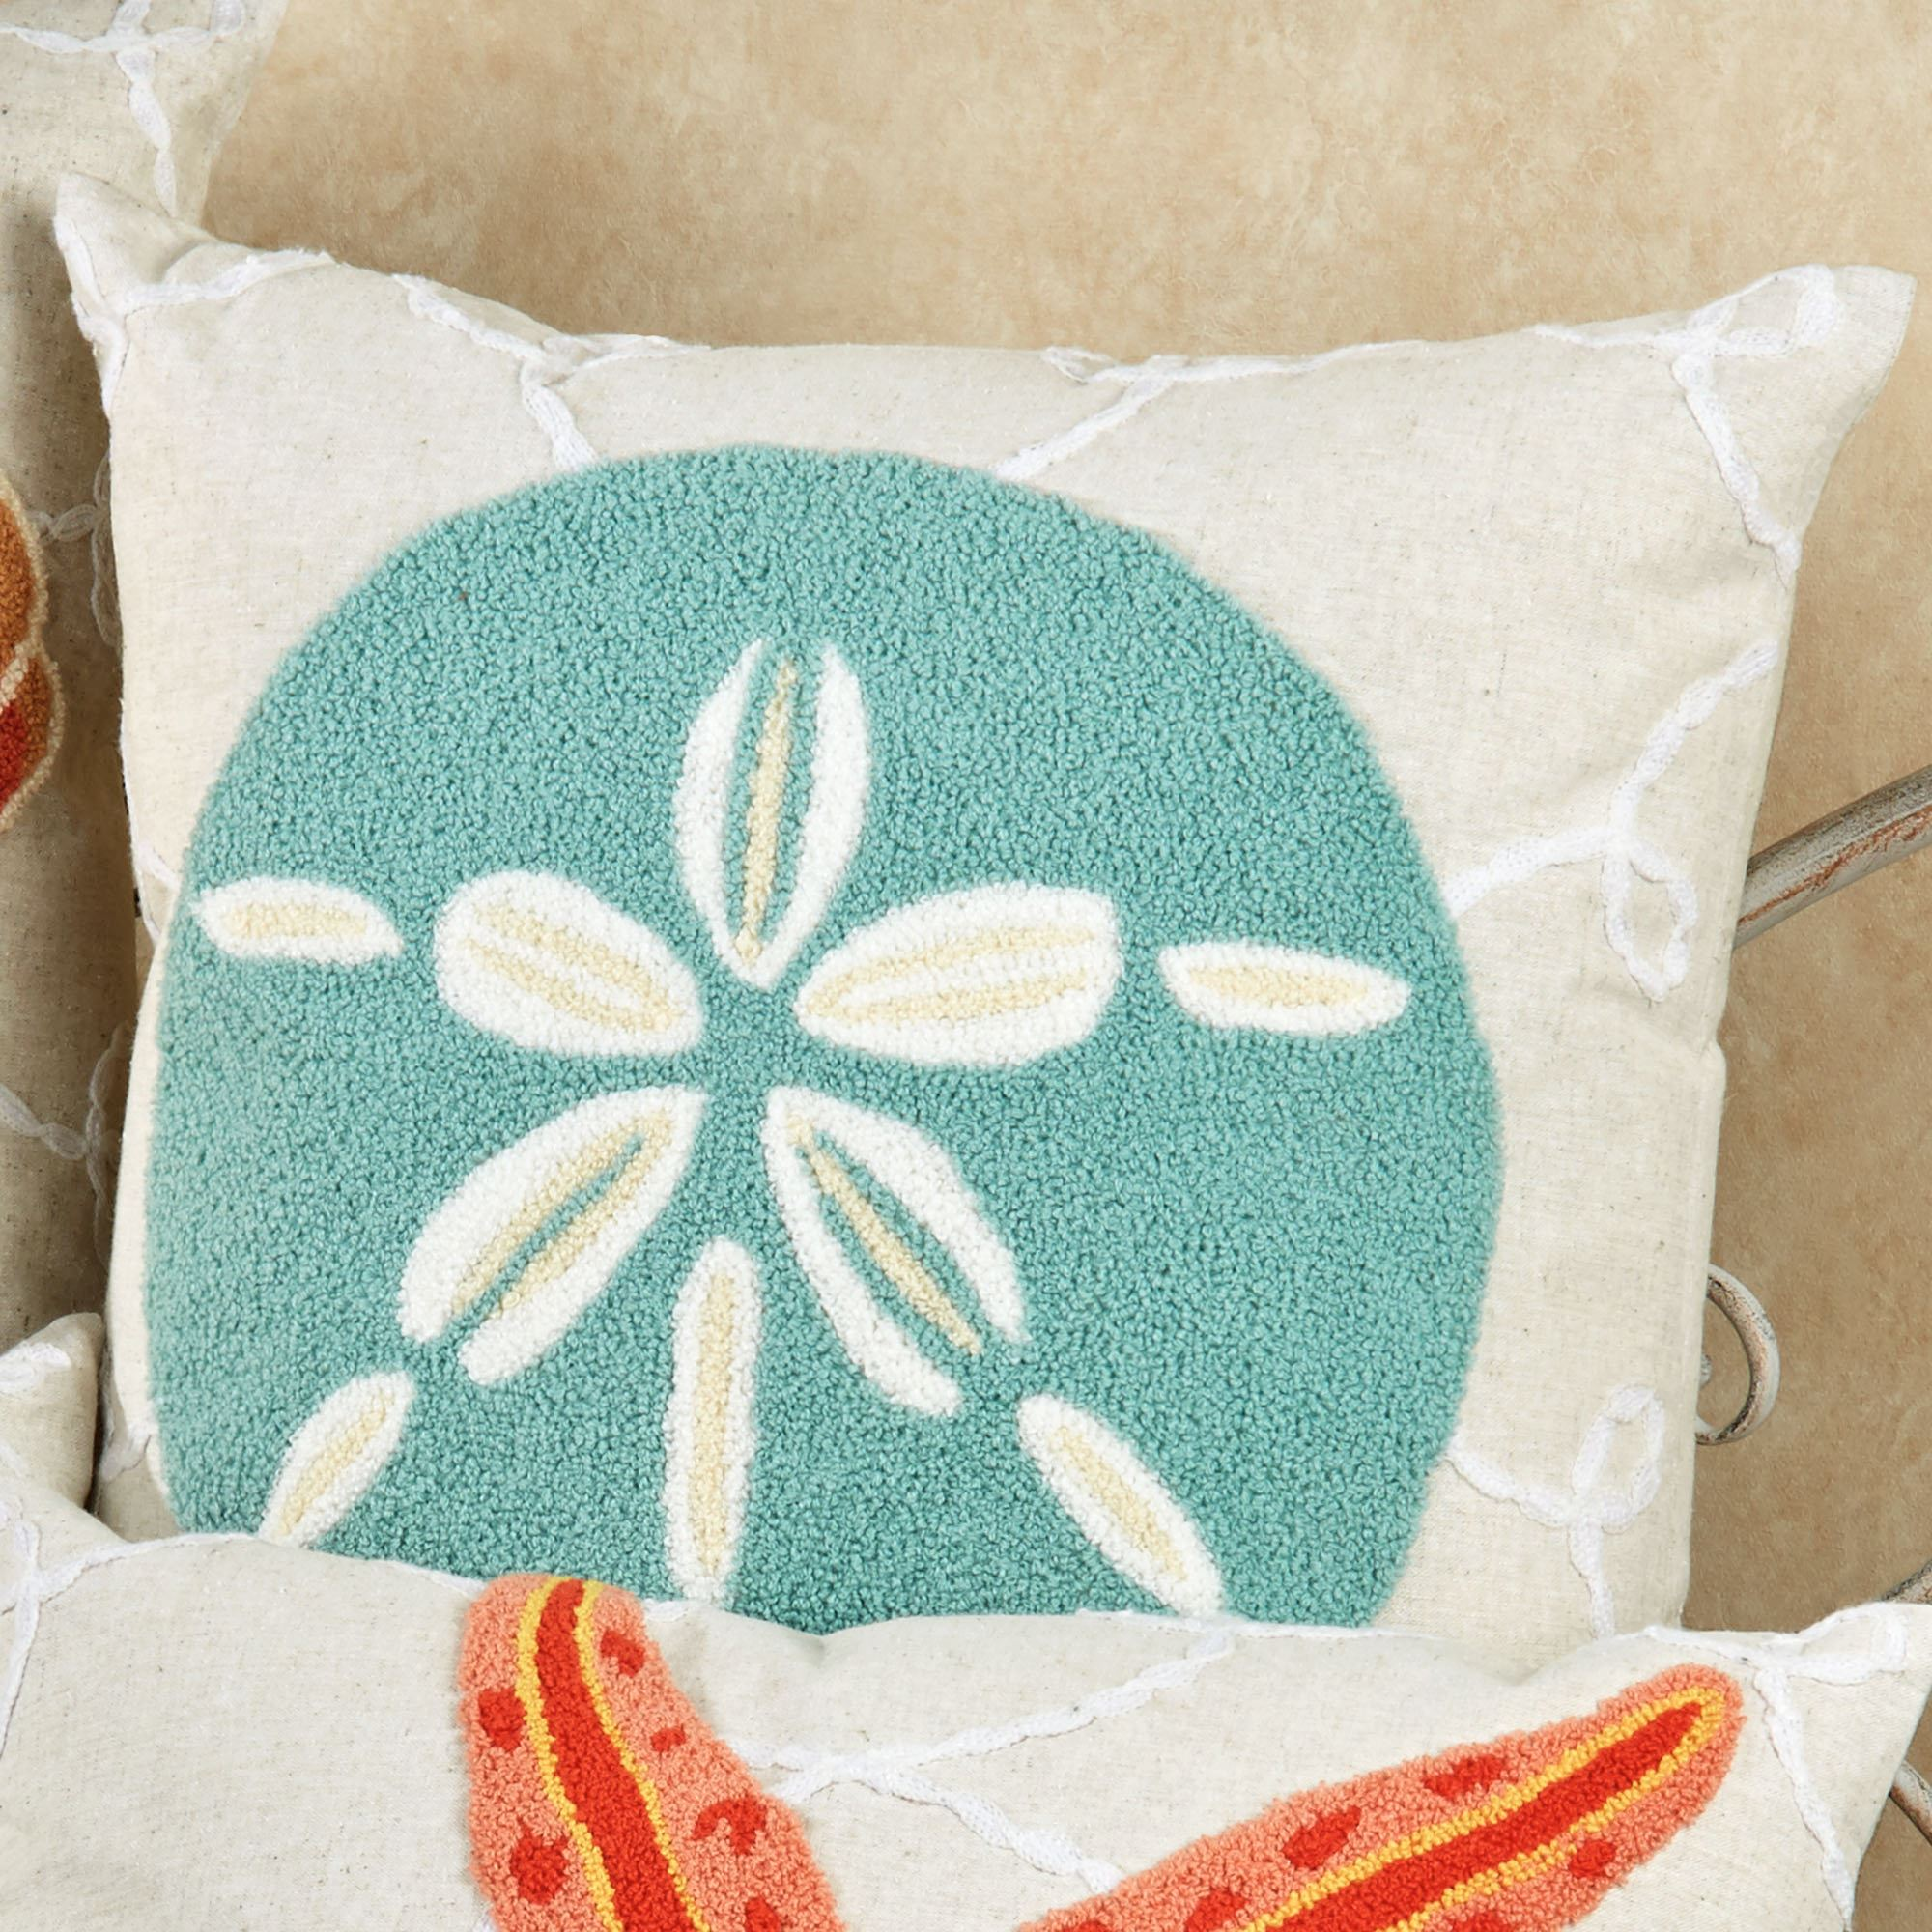 pin sand via made decor etsy cottage surf sea and choose to pillows throw order set beach of three pillow